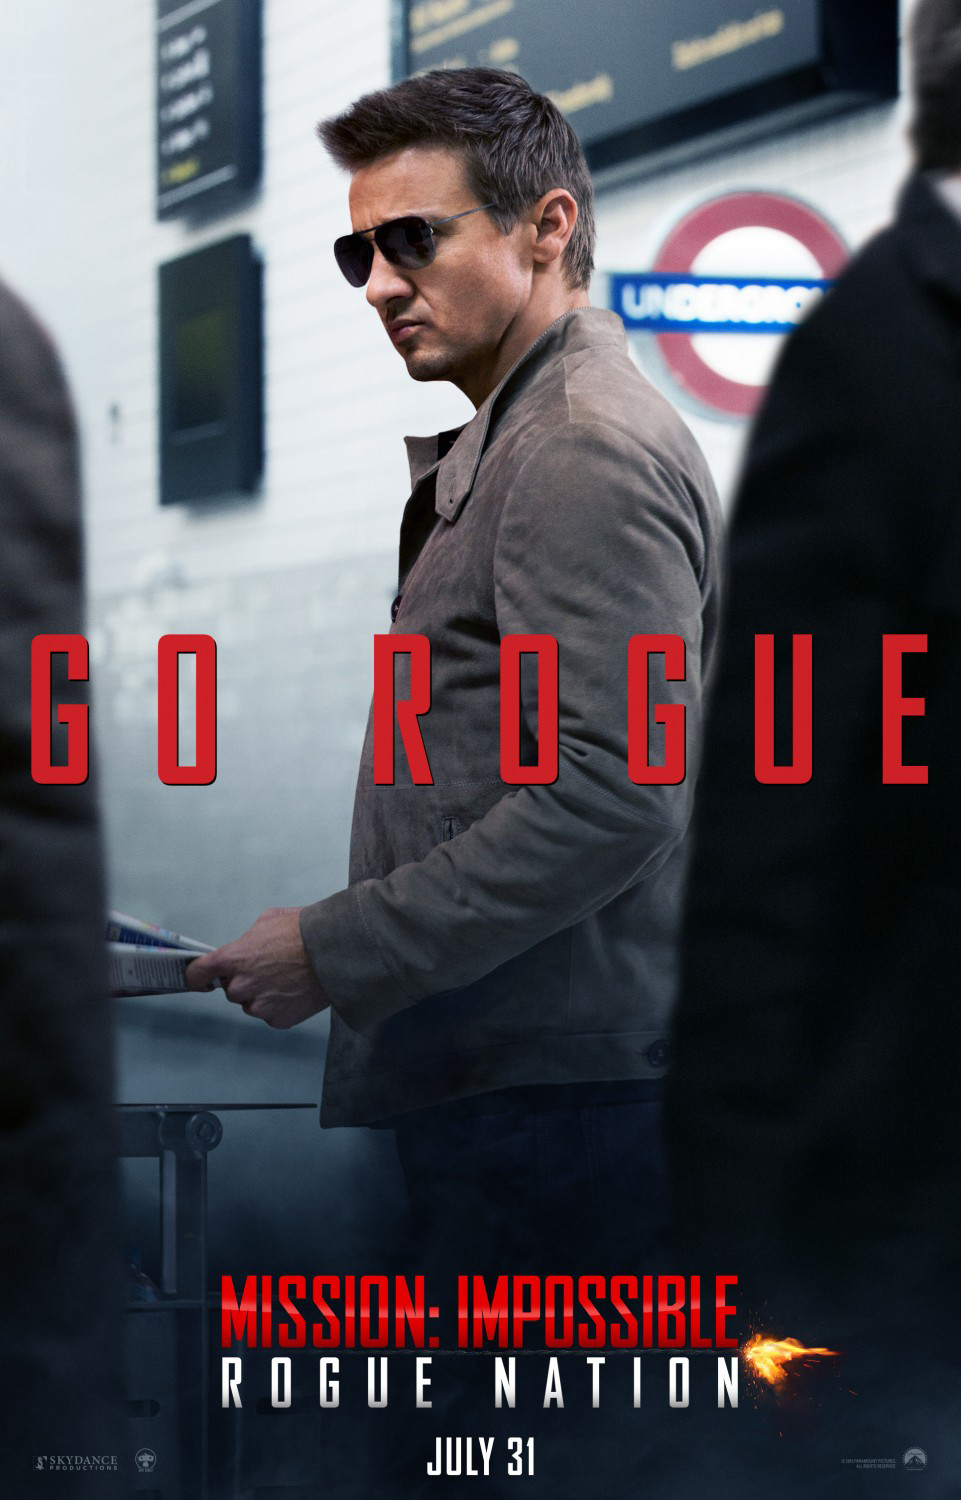 Mission Impossible: Rogue Nation Poster - Jeremy Renner